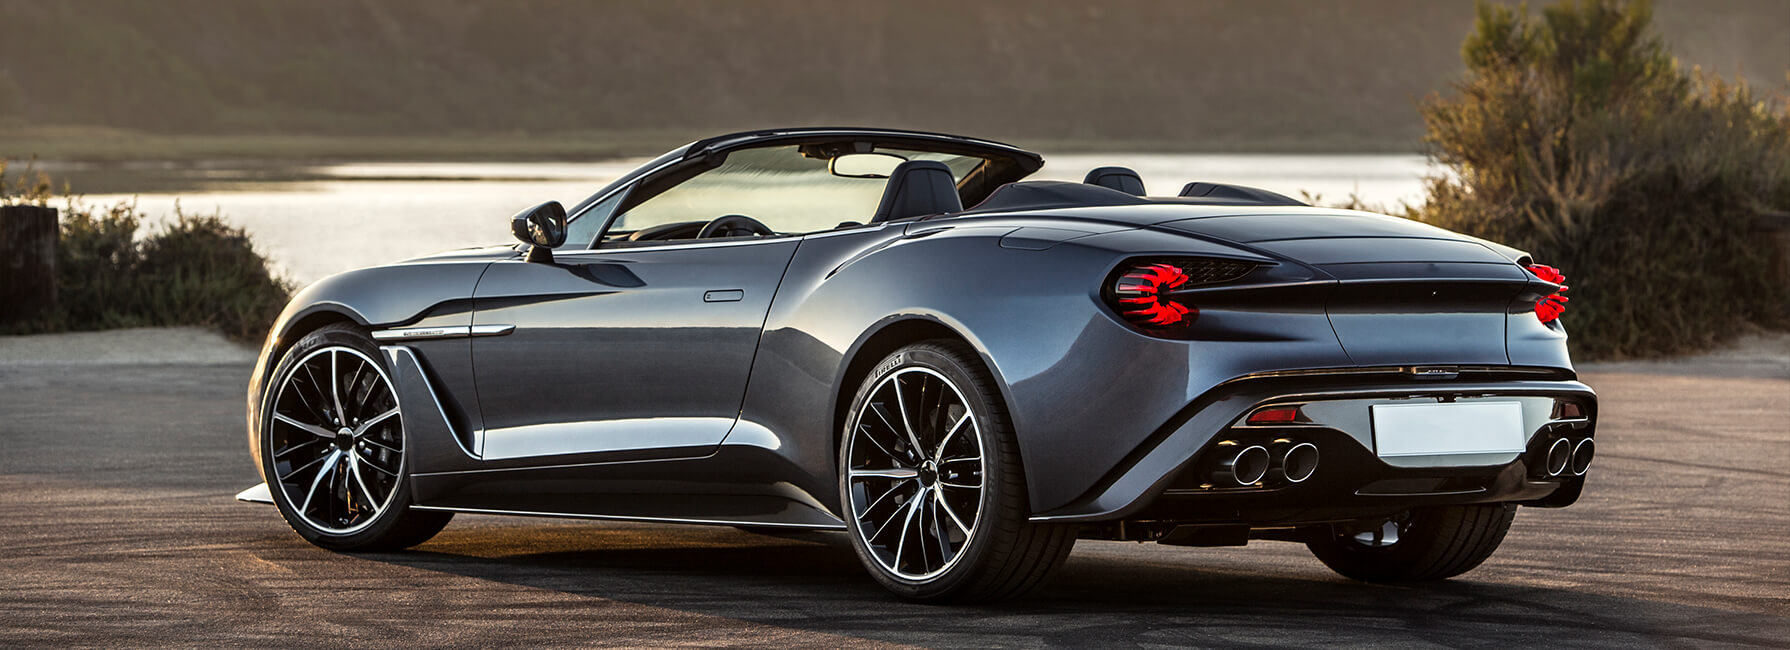 Back and side view of luxury sports car with roof off